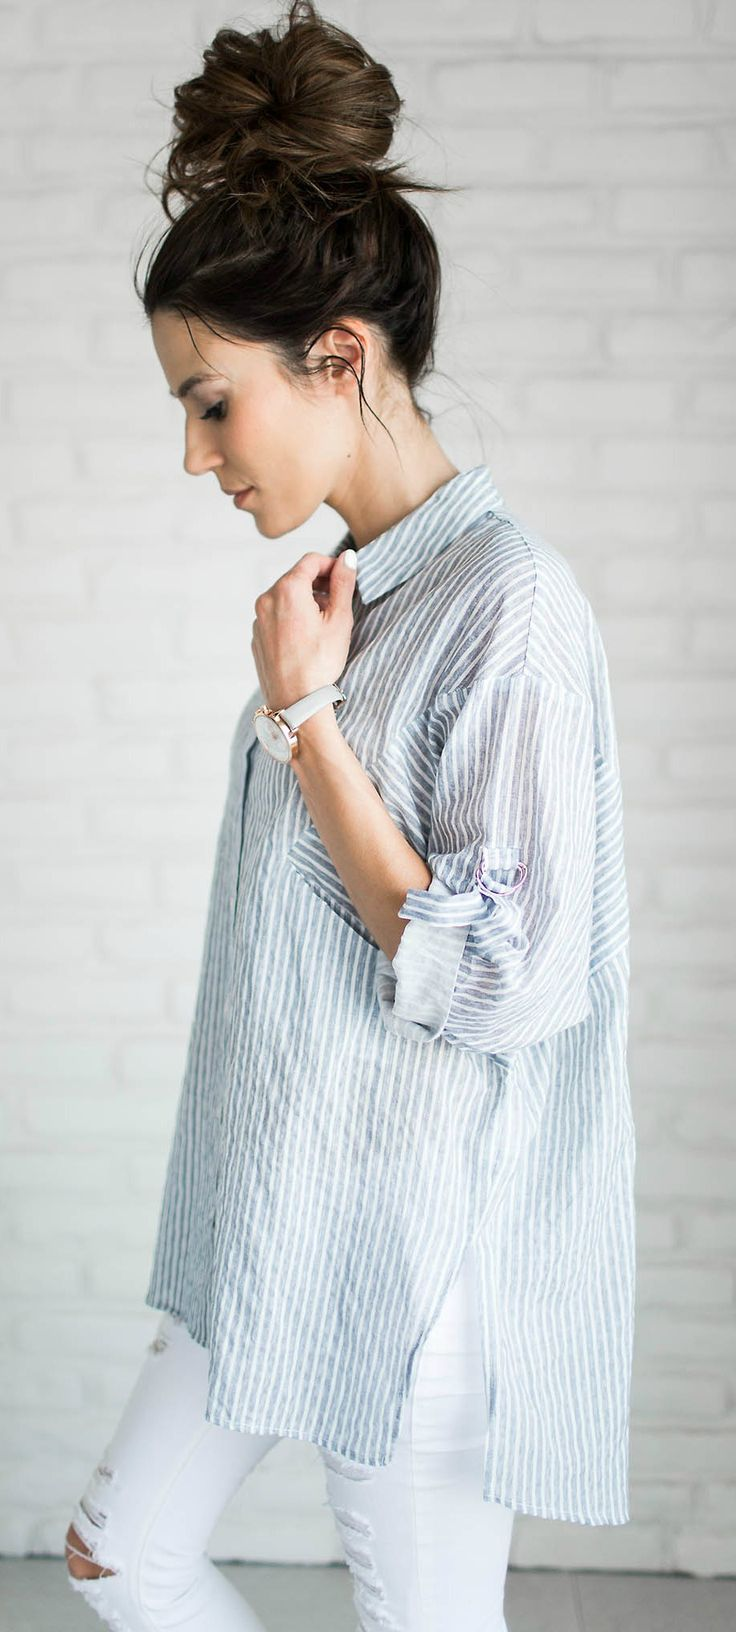 Top knot + button down striped top.